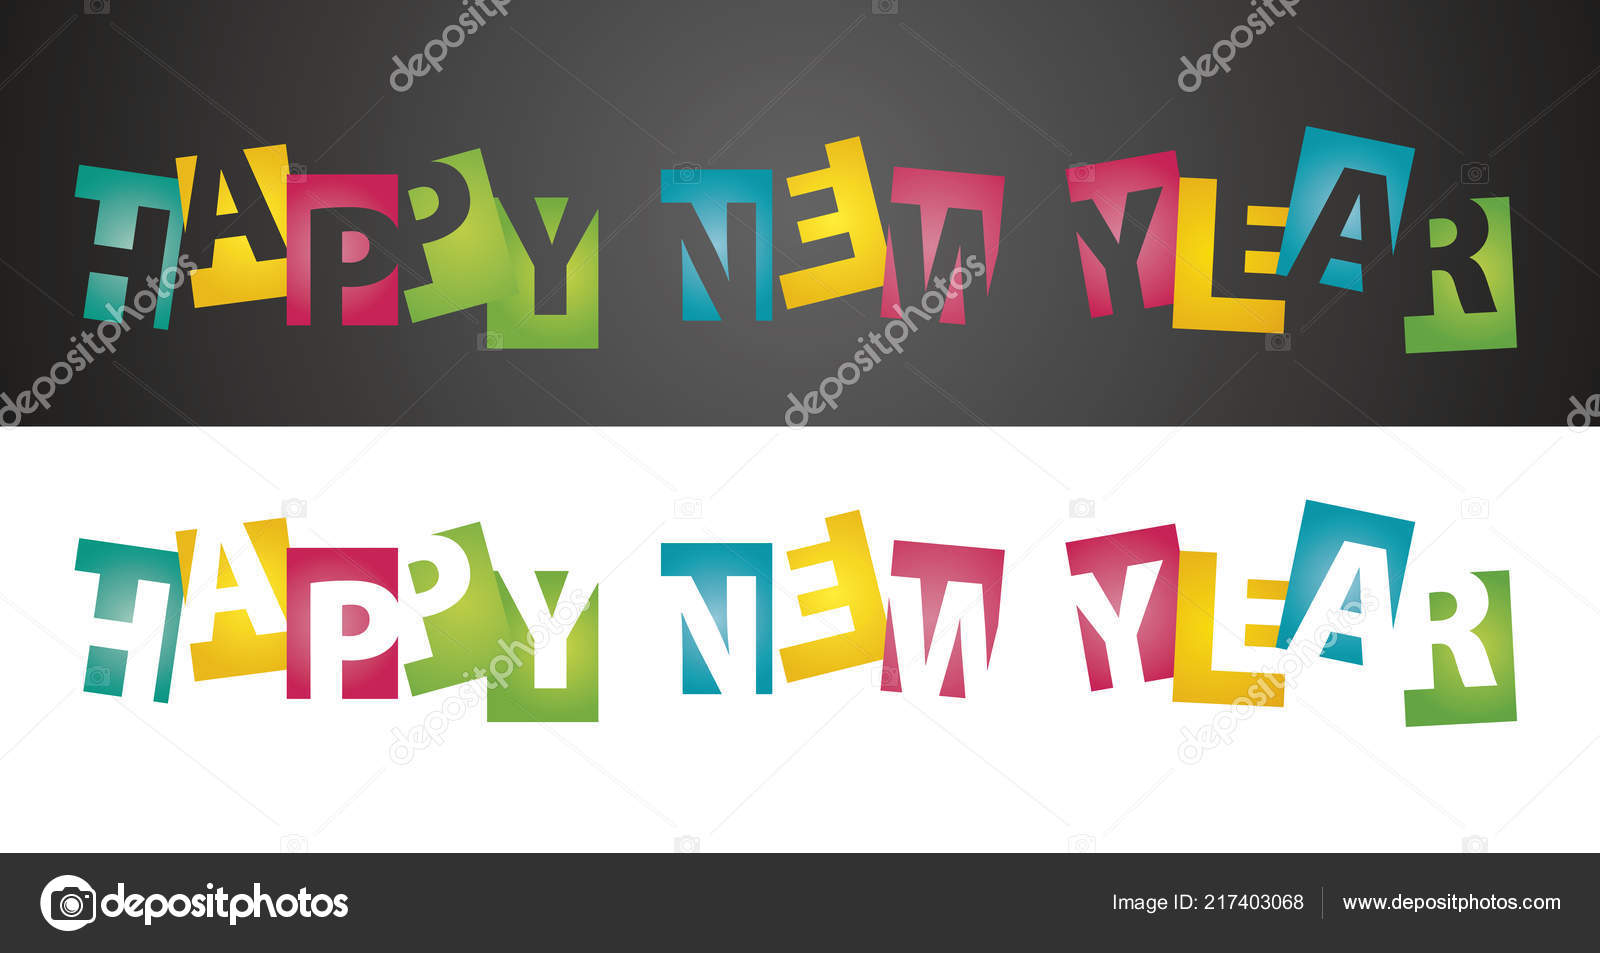 happy new year 2019 negative space color letters black white landscape background logo icon banner greeting card vector by simbos